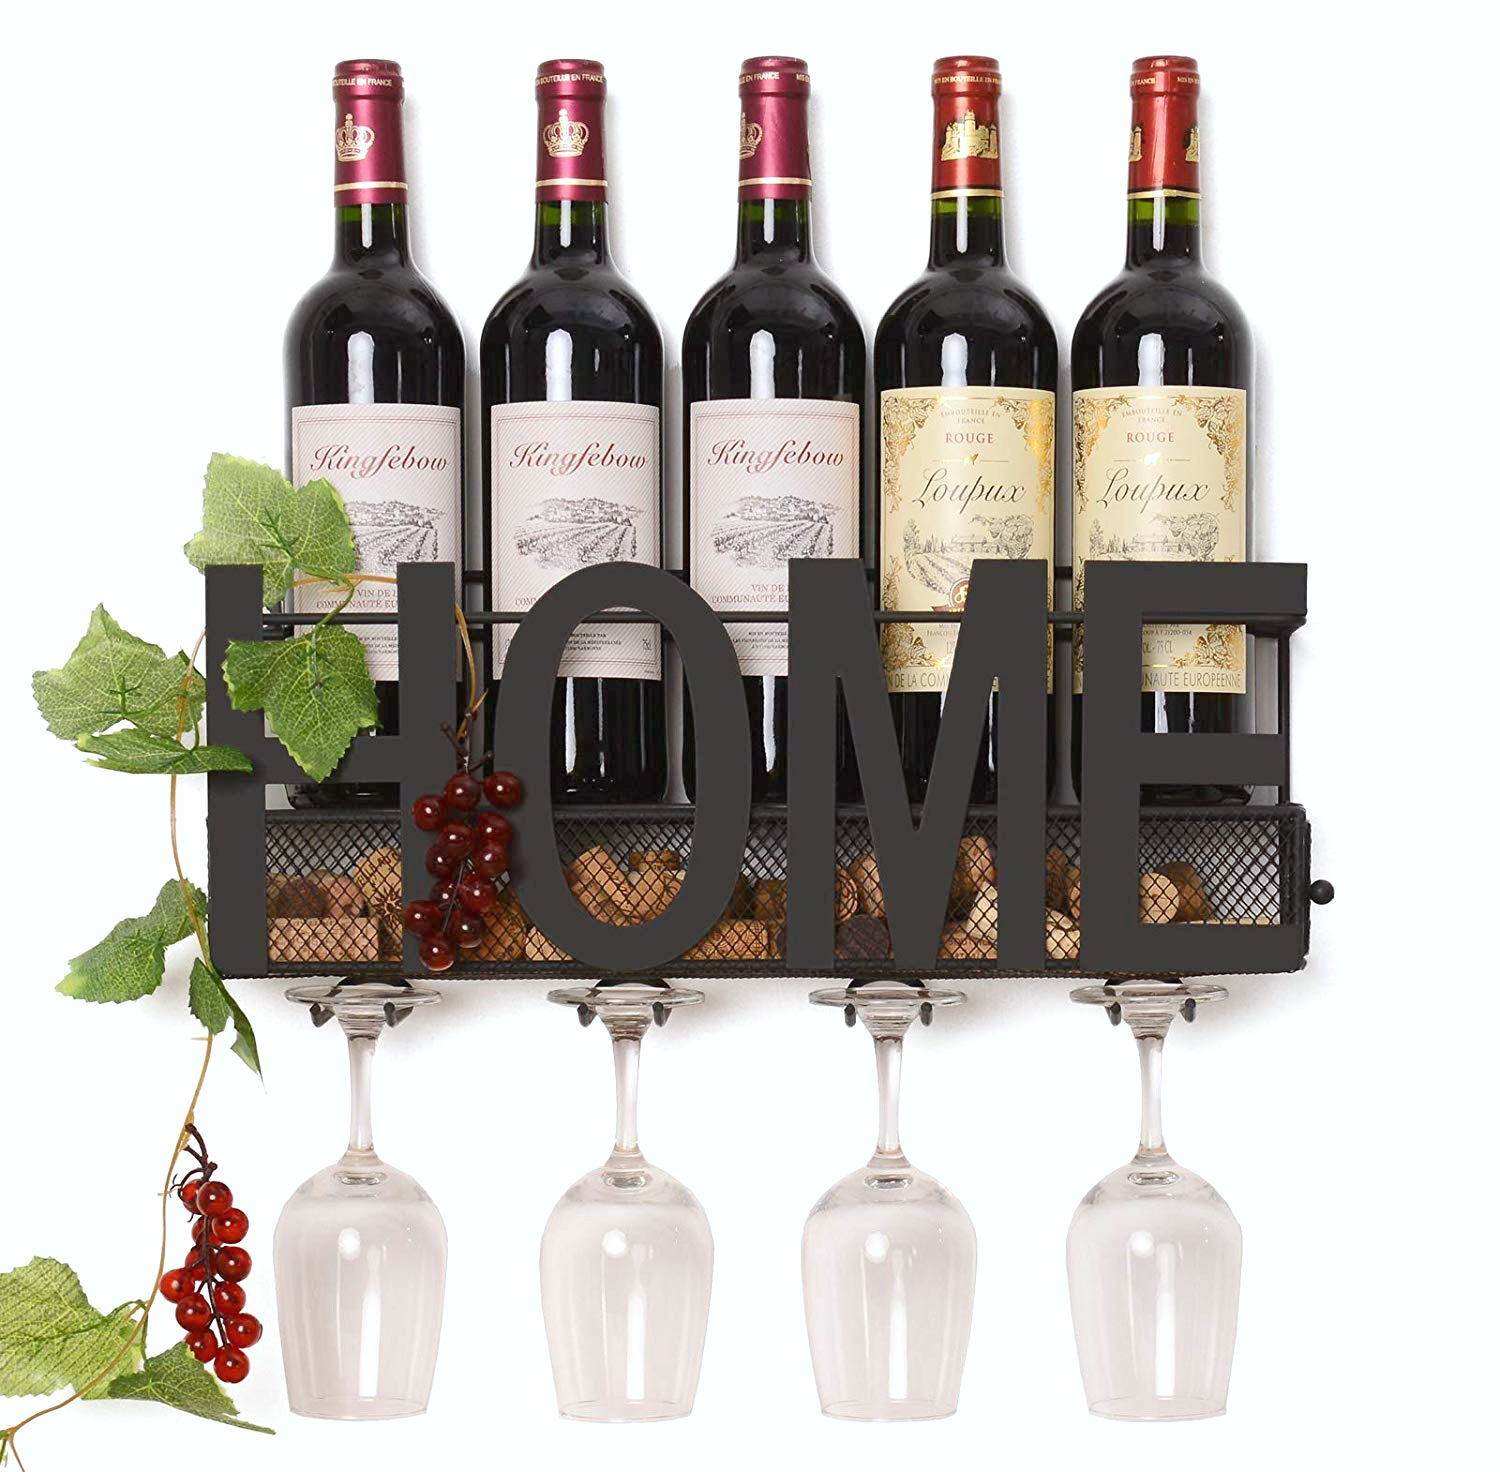 Home wine rack for the wine lover, with 4 bottles and 4 glasses hanging.